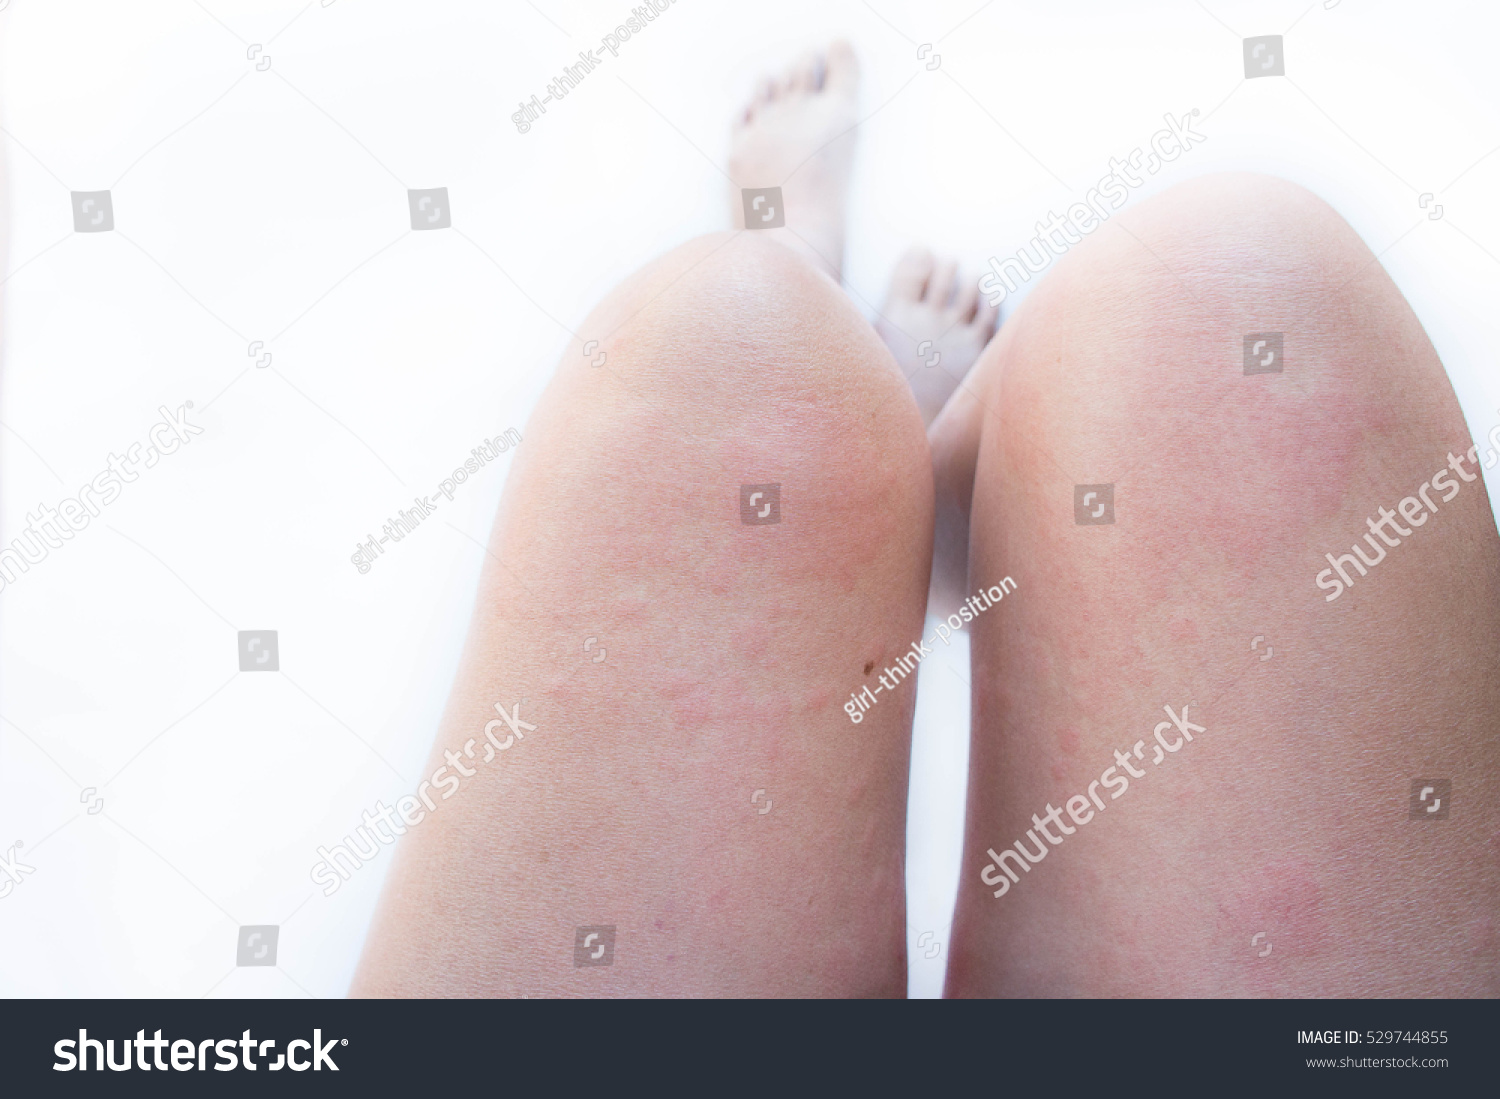 Allergic Skin Rash Swelling Itching Skin Stock Photo (Edit Now